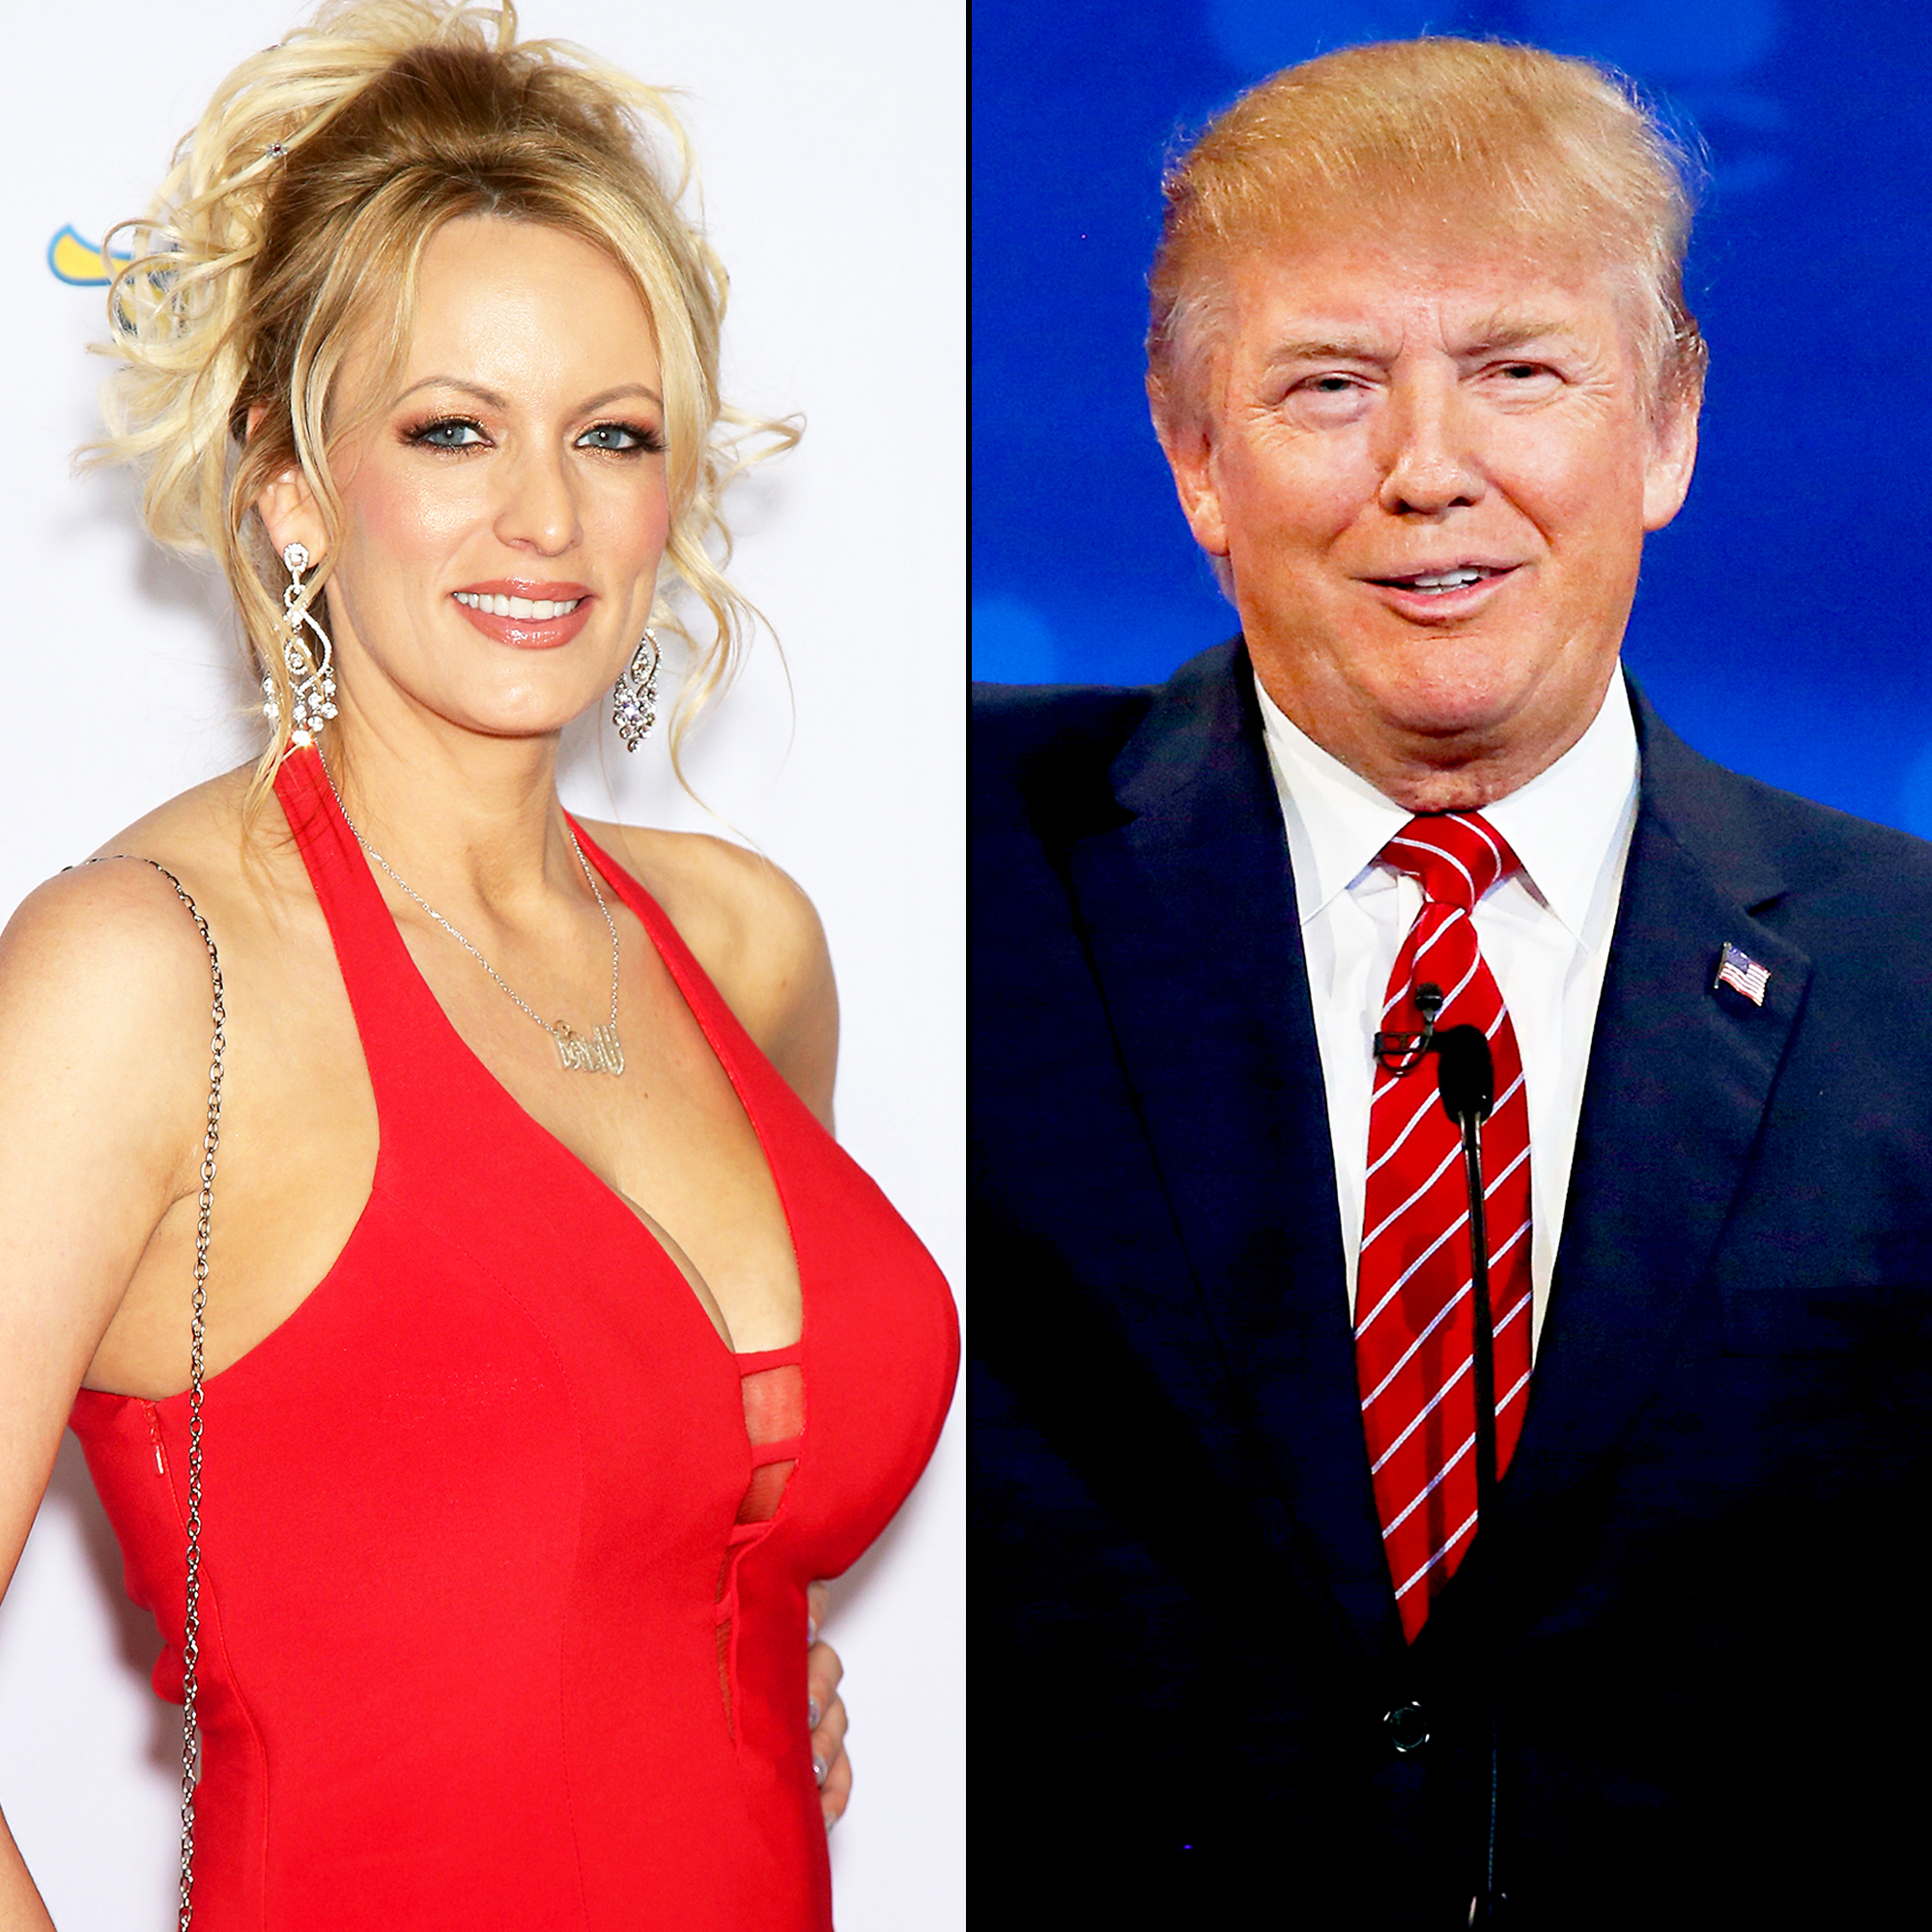 CBS Sets Date for Stormy Daniels Interview